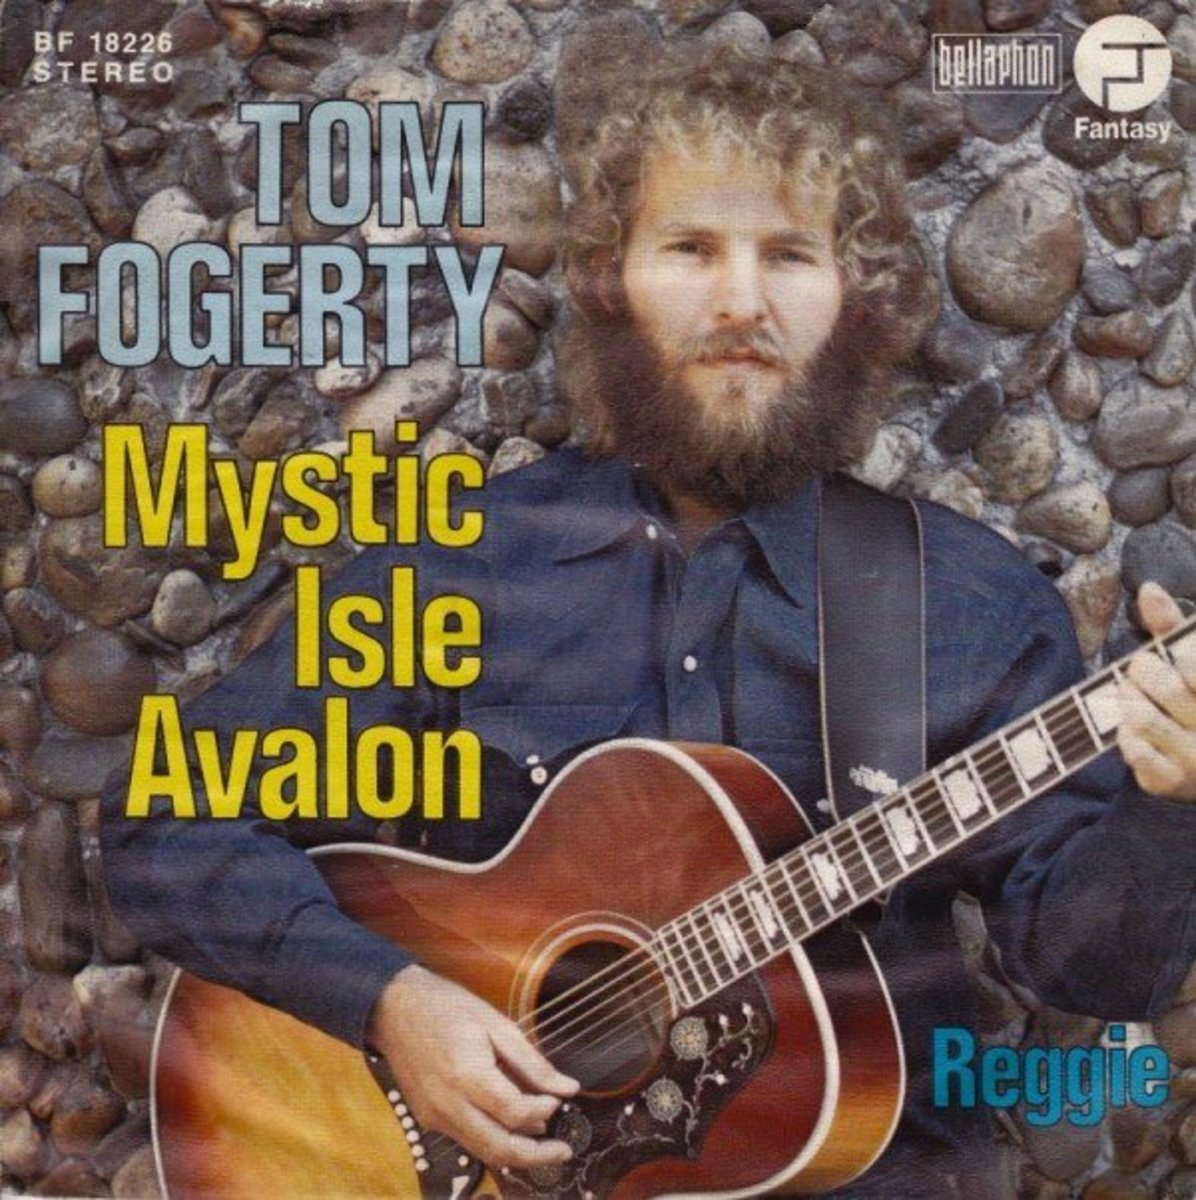 Post-Revival Part 2:  Tom Fogerty's Adventures in Music 1975-1988